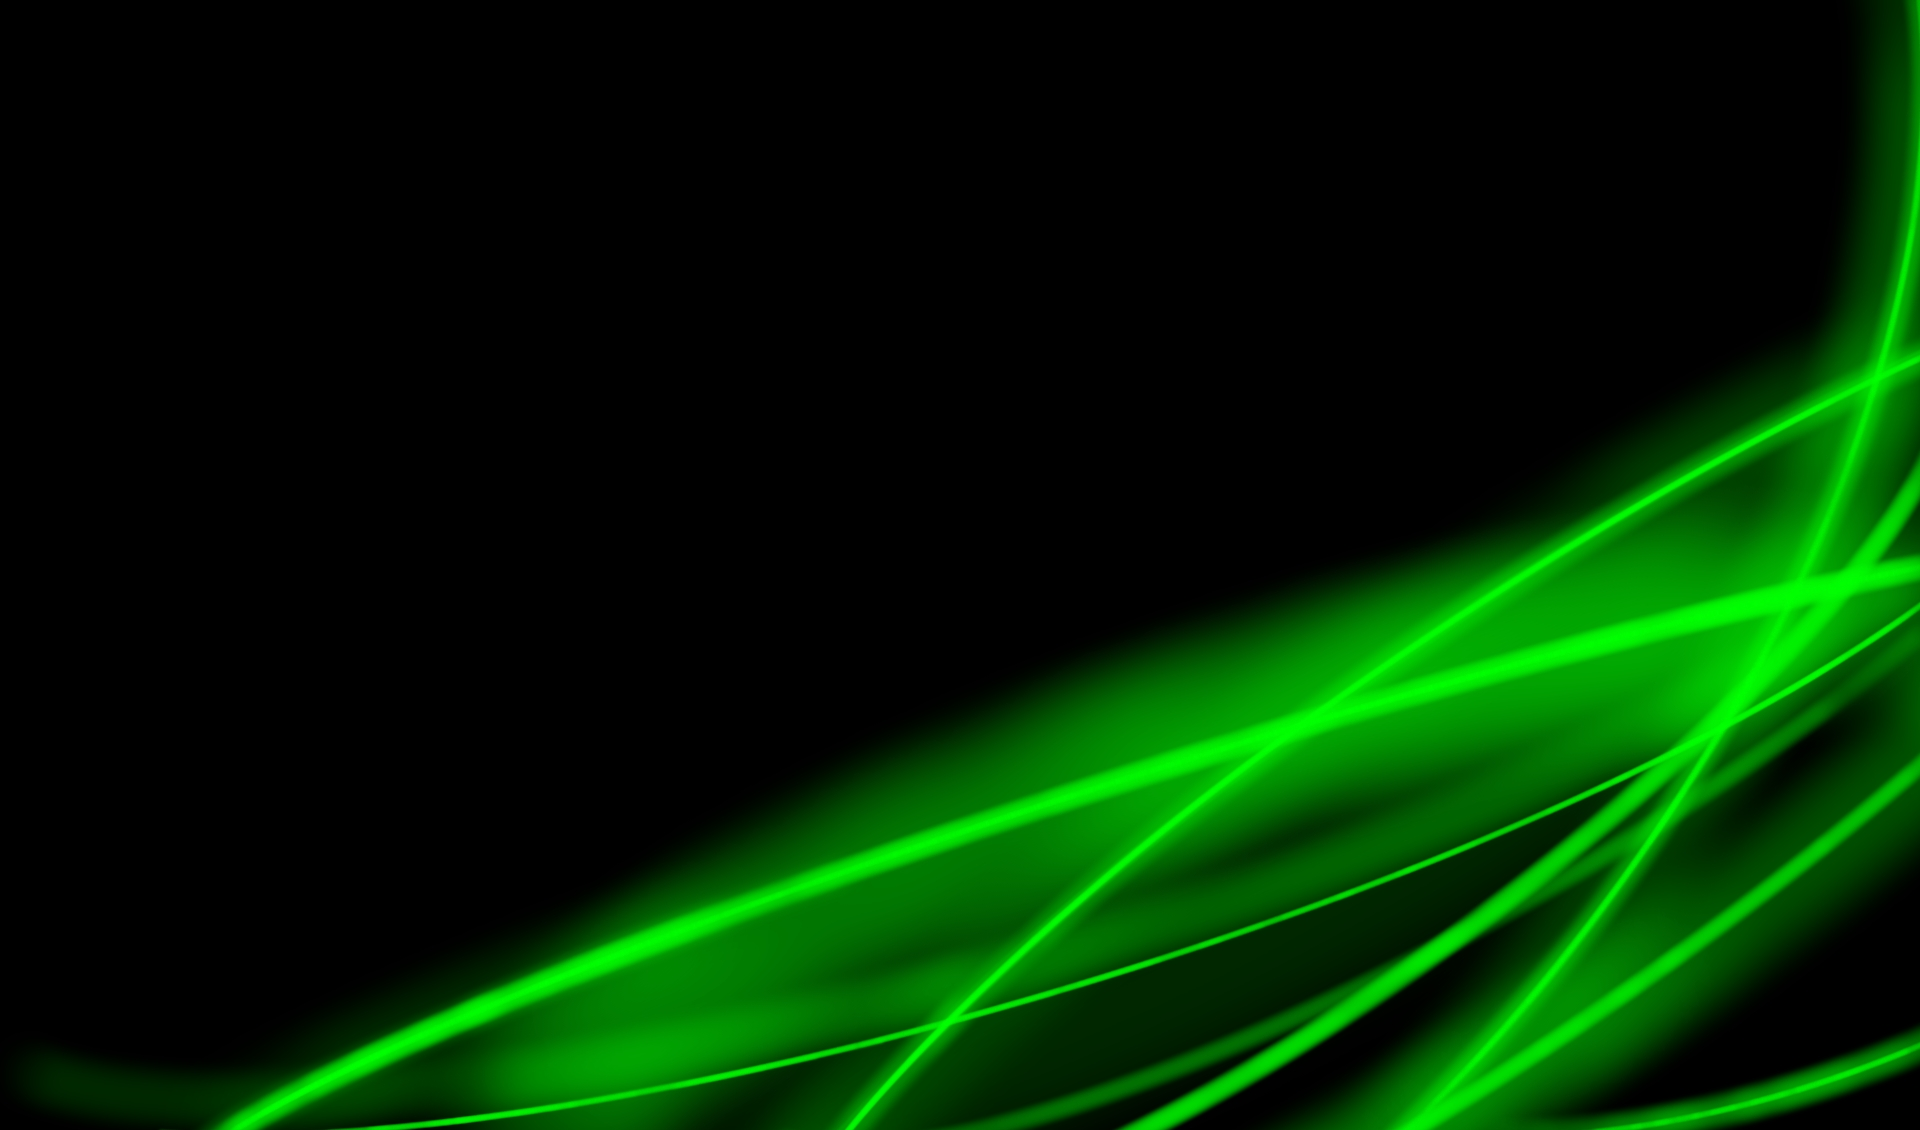 Neon Background v1 by Dragon Dew 1920x1130